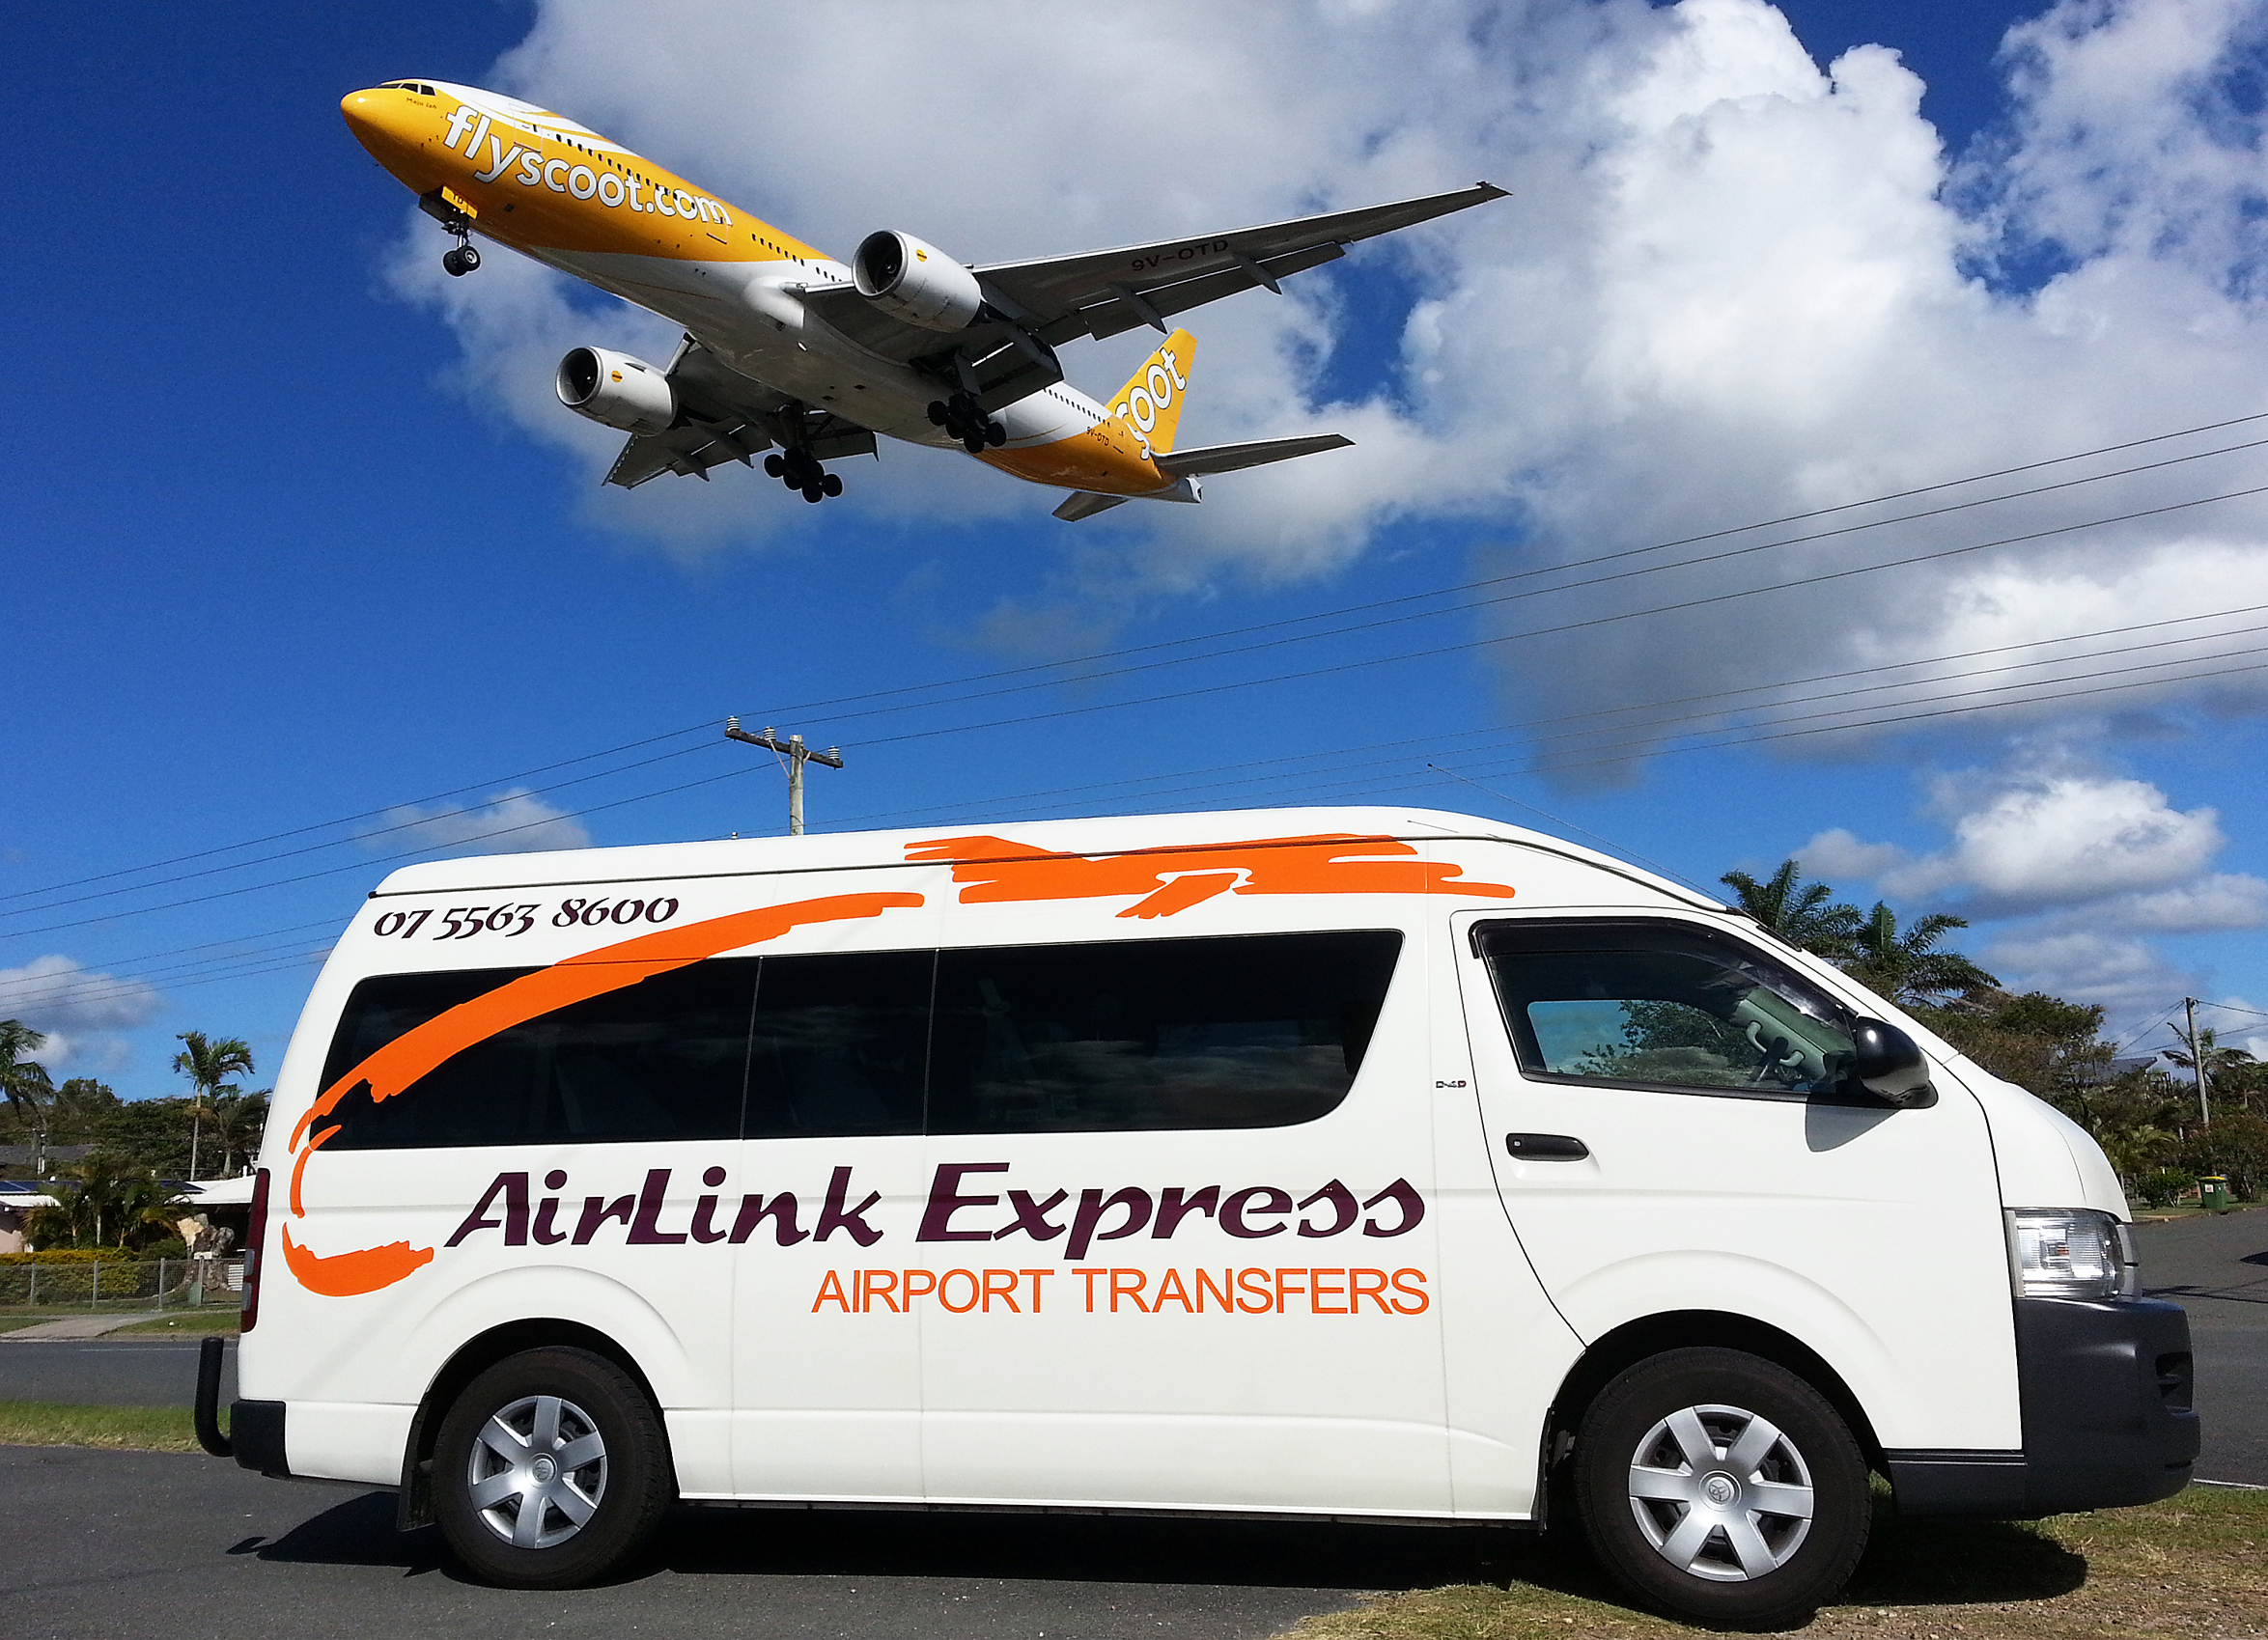 Airlink Express Airport Transfers Bus